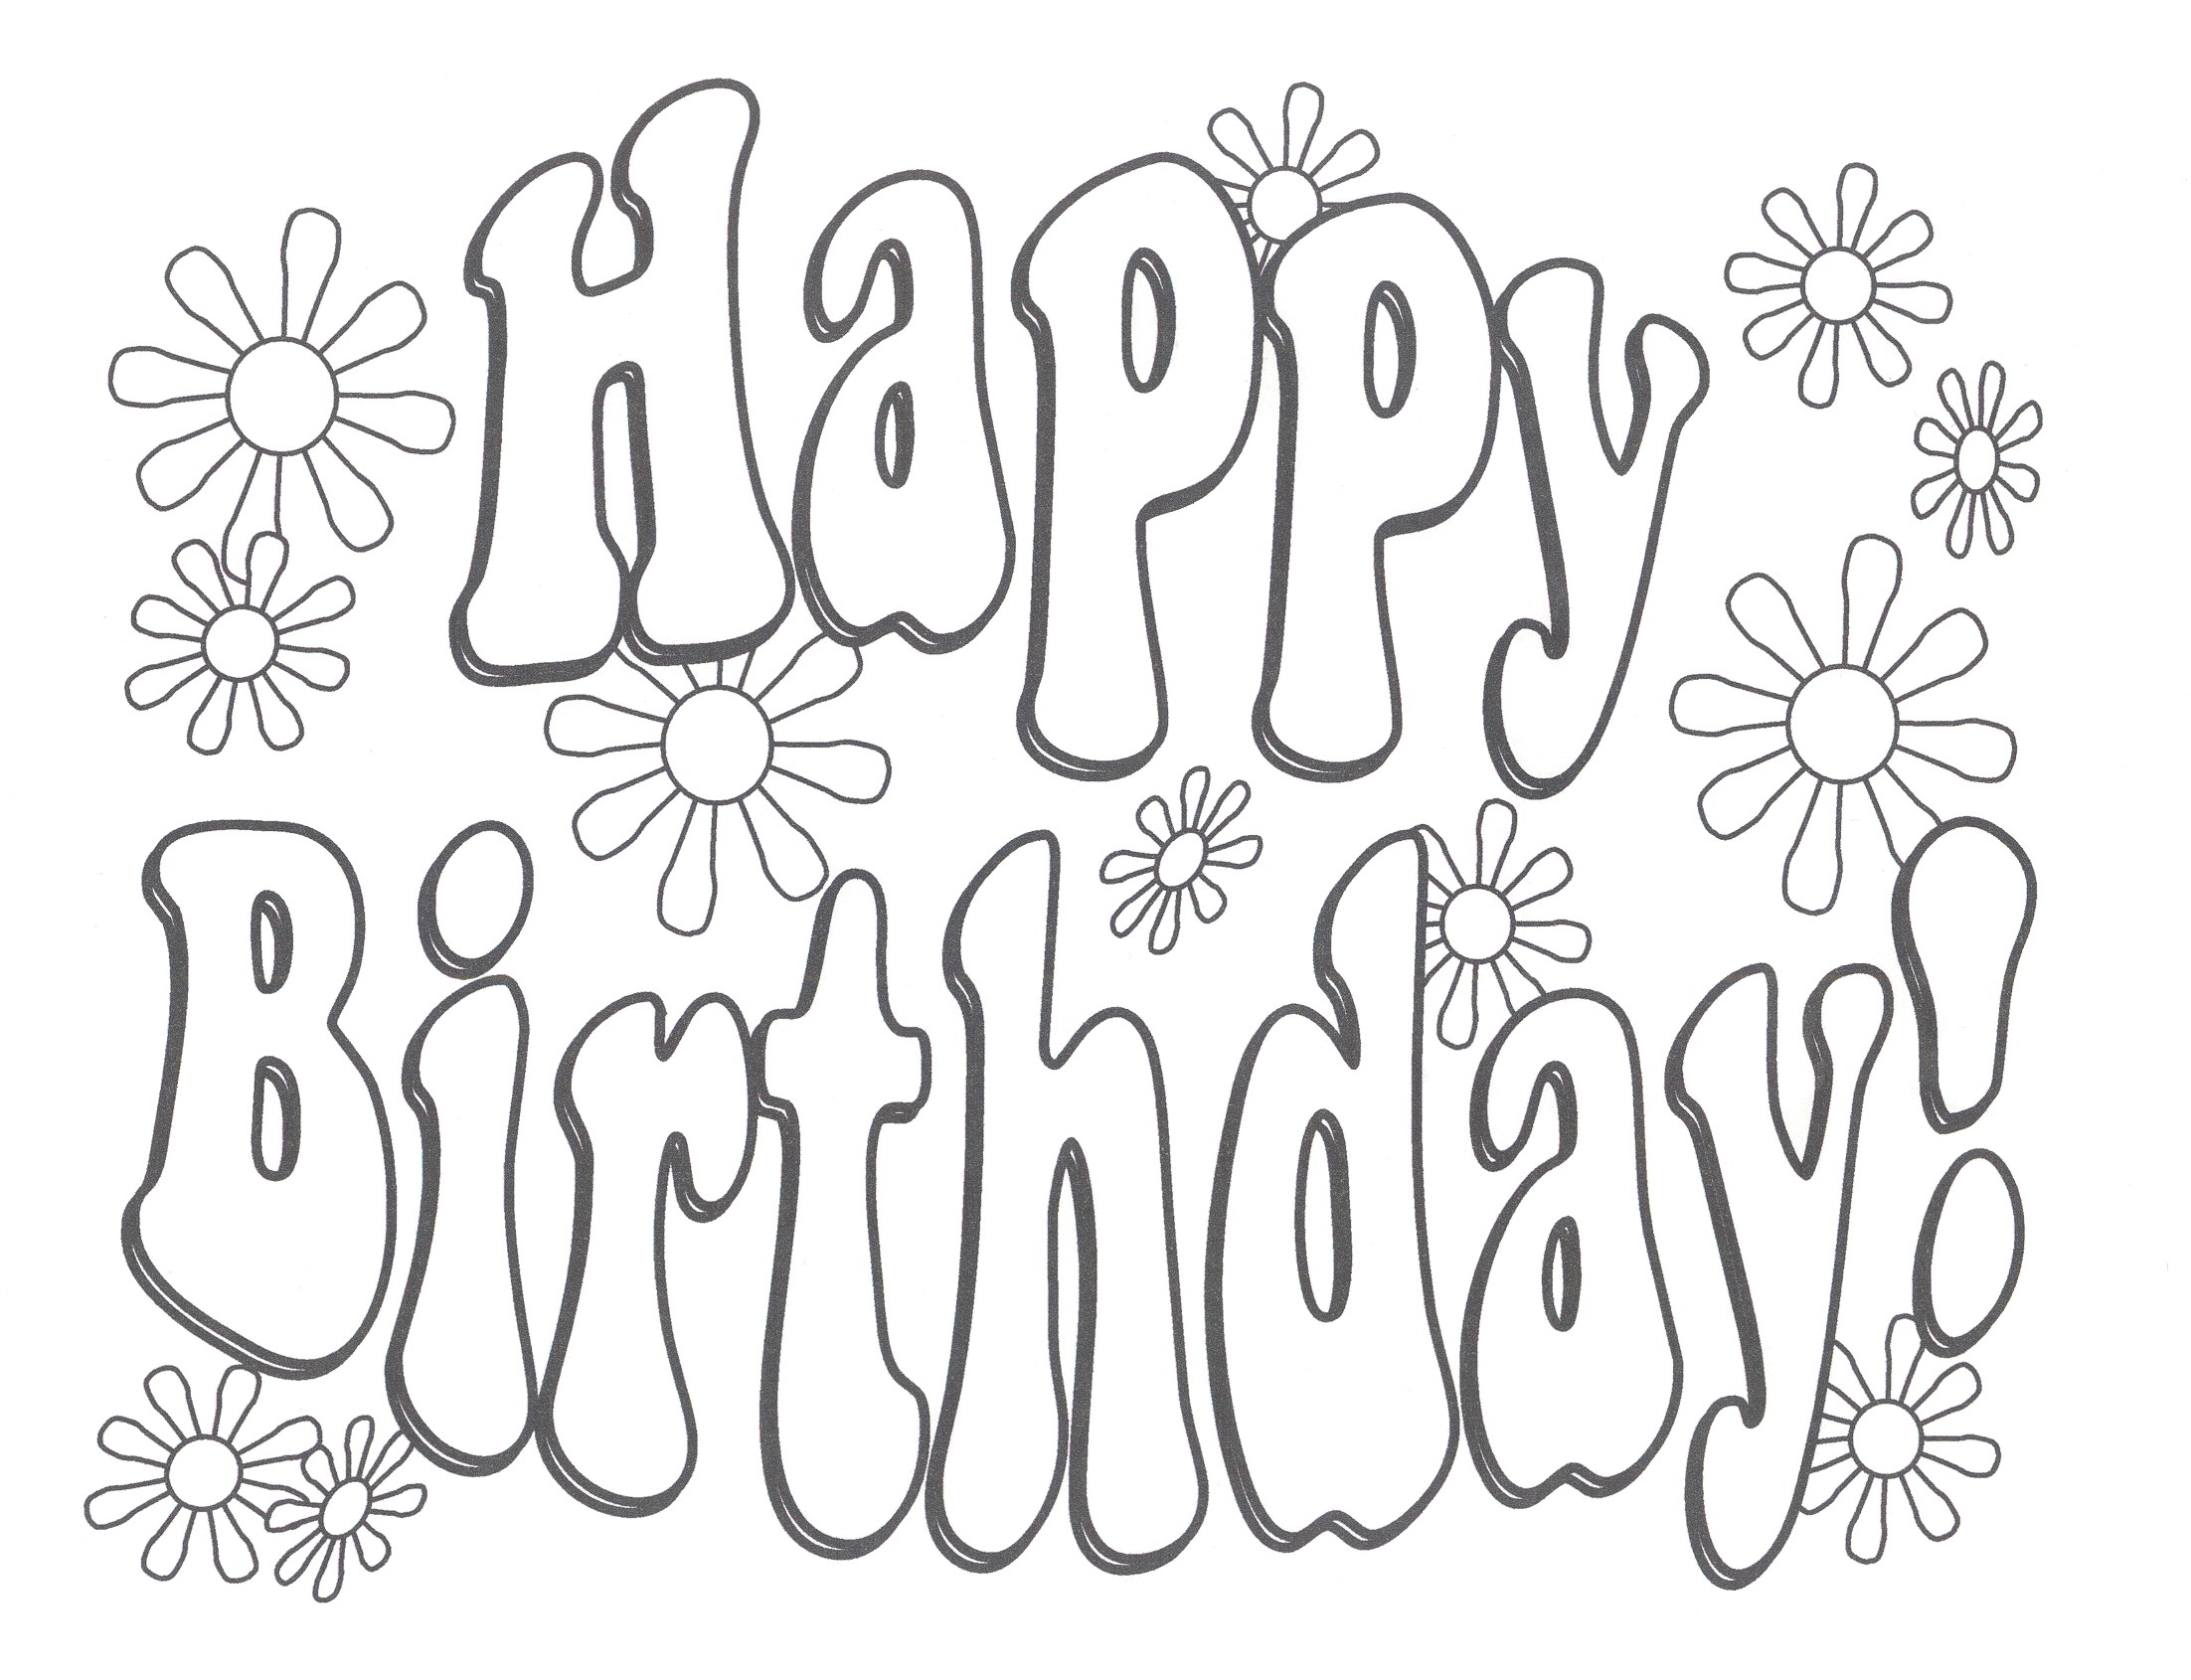 happy birthday daddy coloring ; coloring-pages-for-moms-and-dads-fresh-happy-birthday-color-pages-collection-of-happy-birthday-daddy-coloring-pages